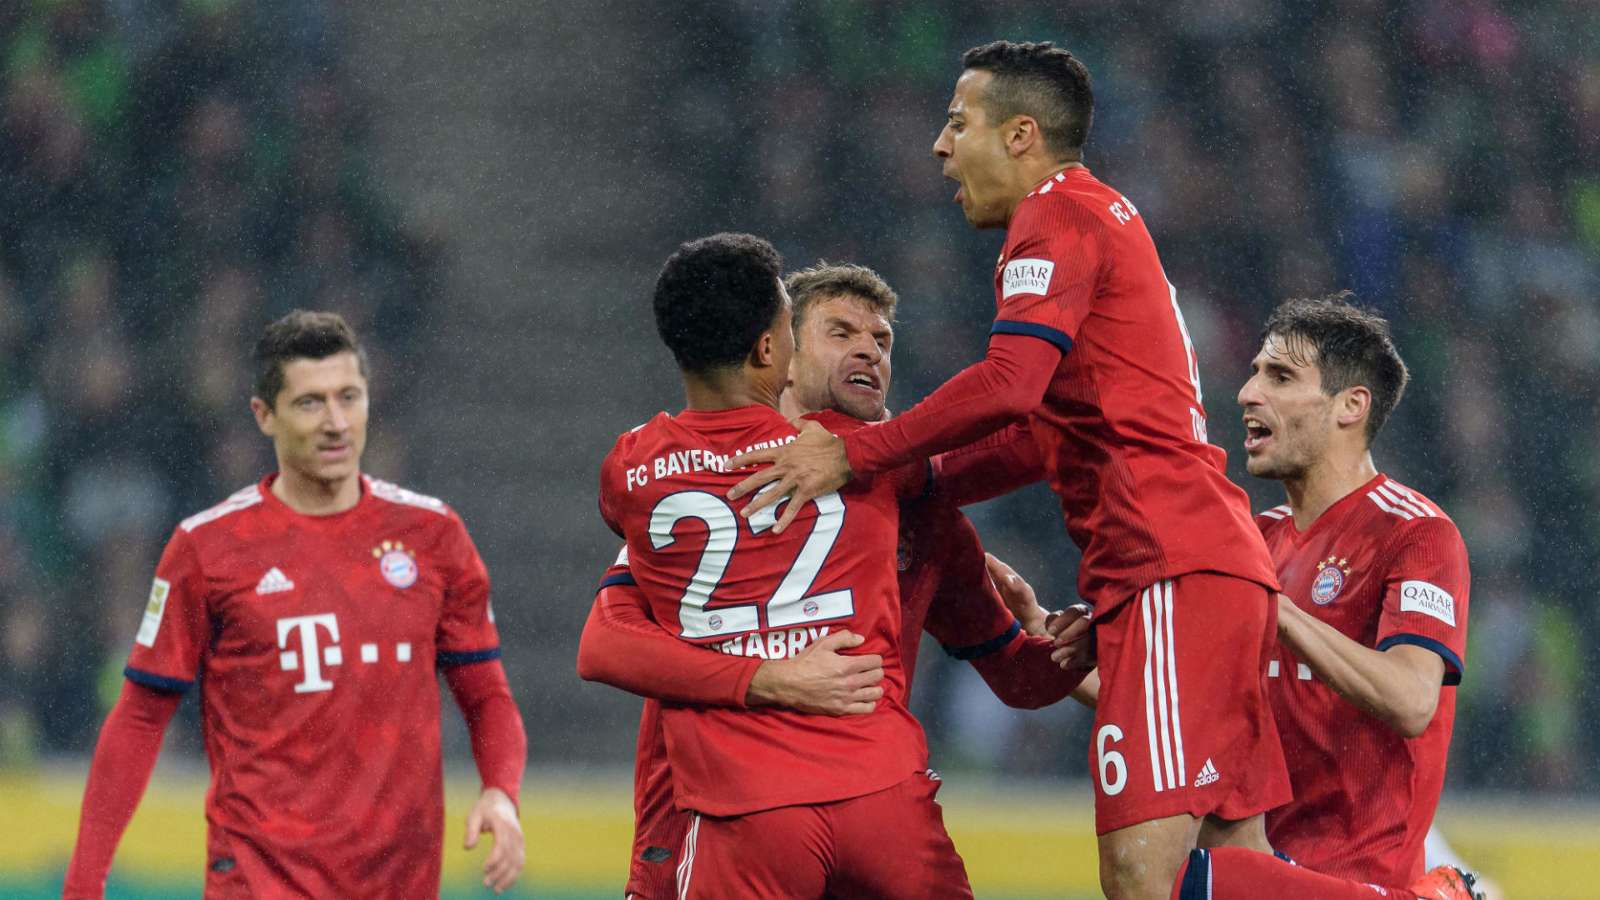 thomas muller Okay ng - Borussia Monchengladbach vs Bayern Munich 1-5: Bundesliga Match Report & Highlights